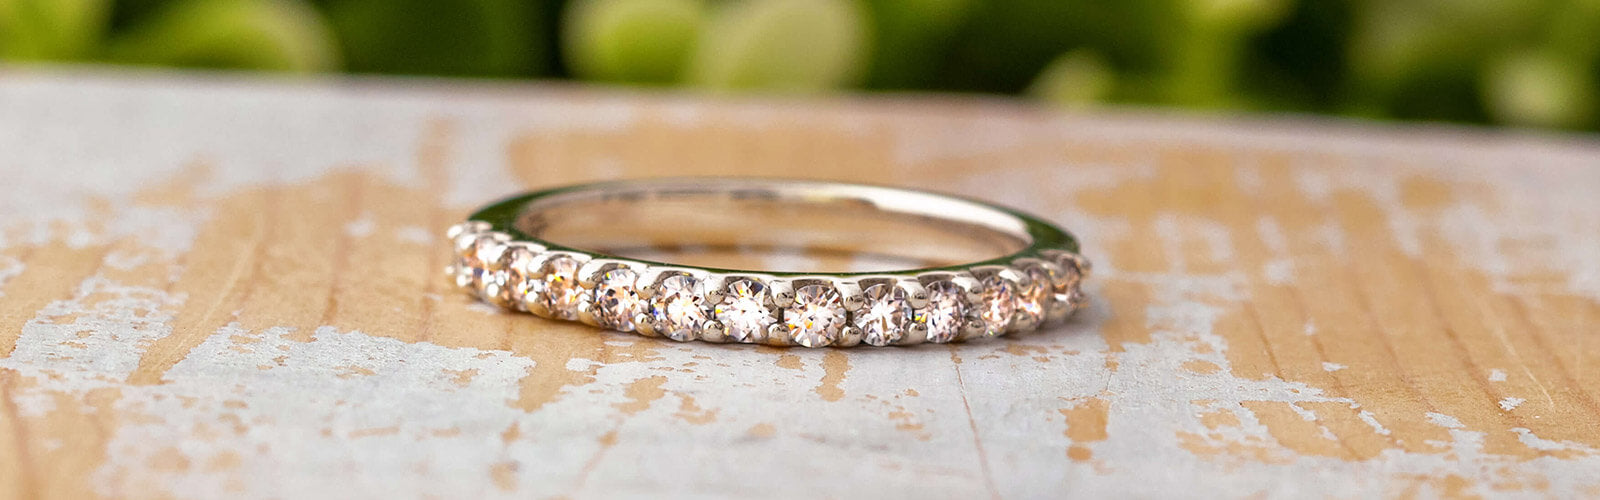 Traditional Women's Wedding Bands